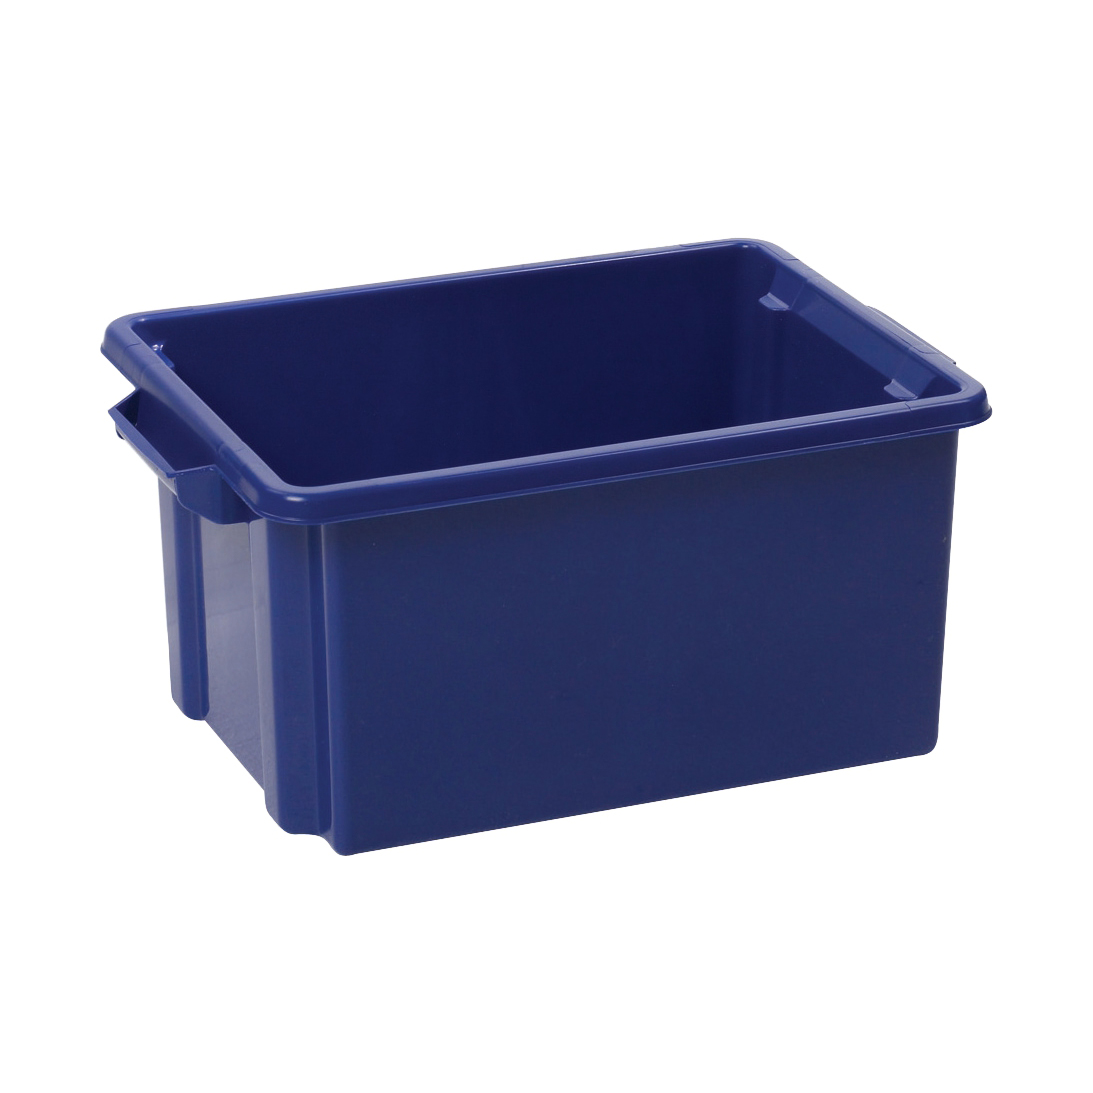 Image for Strata Storemaster Midi Crate External W360xD270xH190mm 14.5 Litres Blue Ref HW44 BU